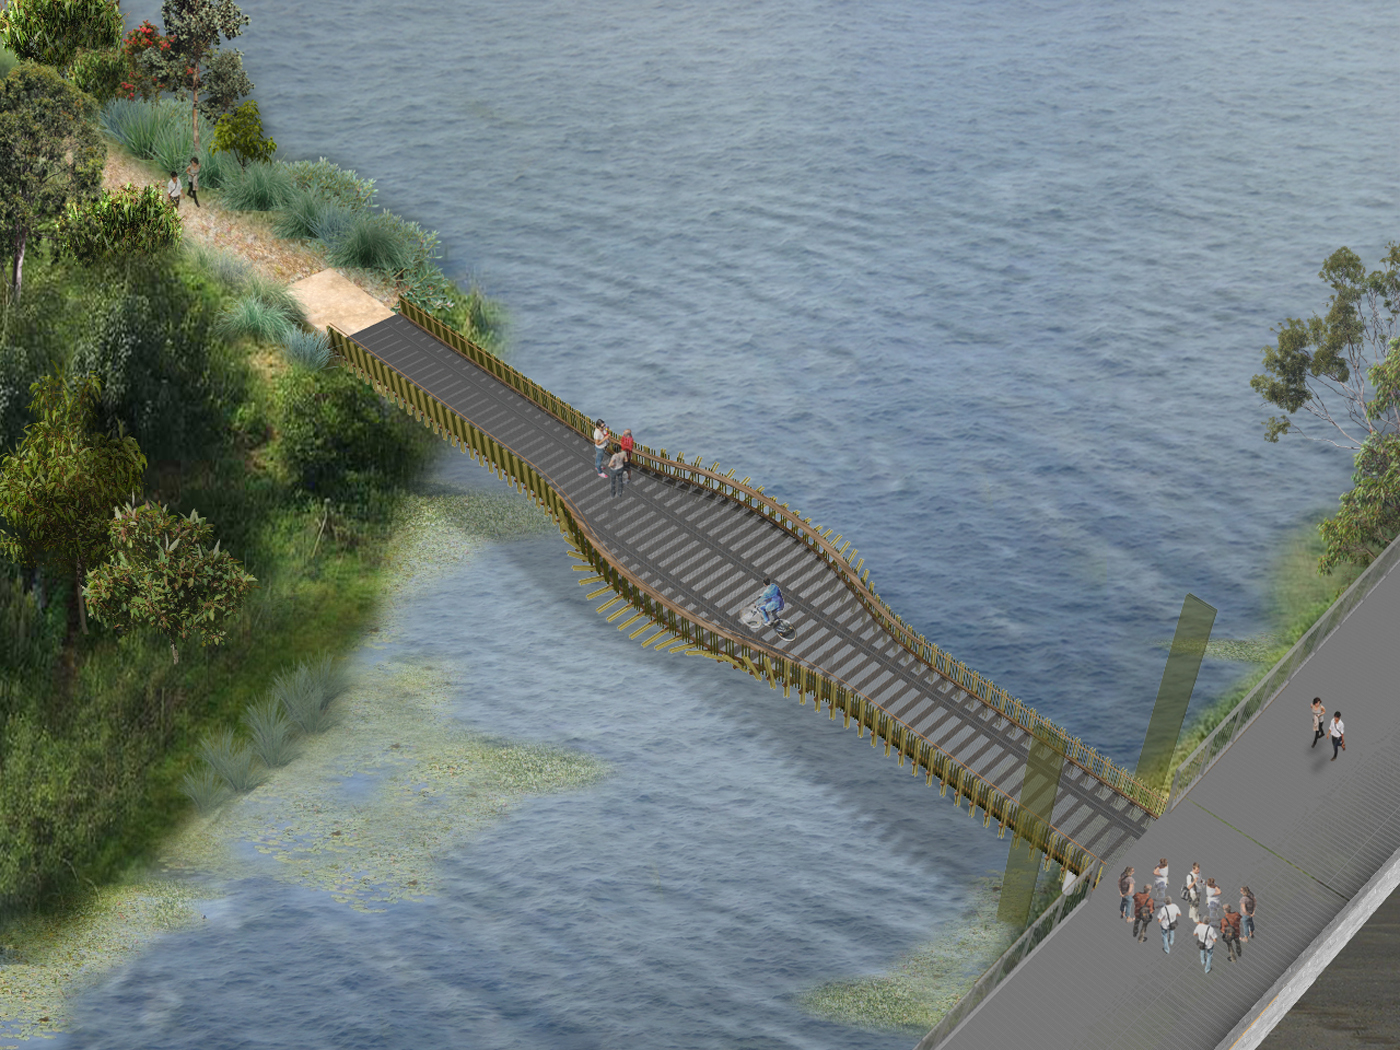 Alison Road Bridge by Sydney award winning architecture office Sam Crawford Architects. Rendered aerial perspective